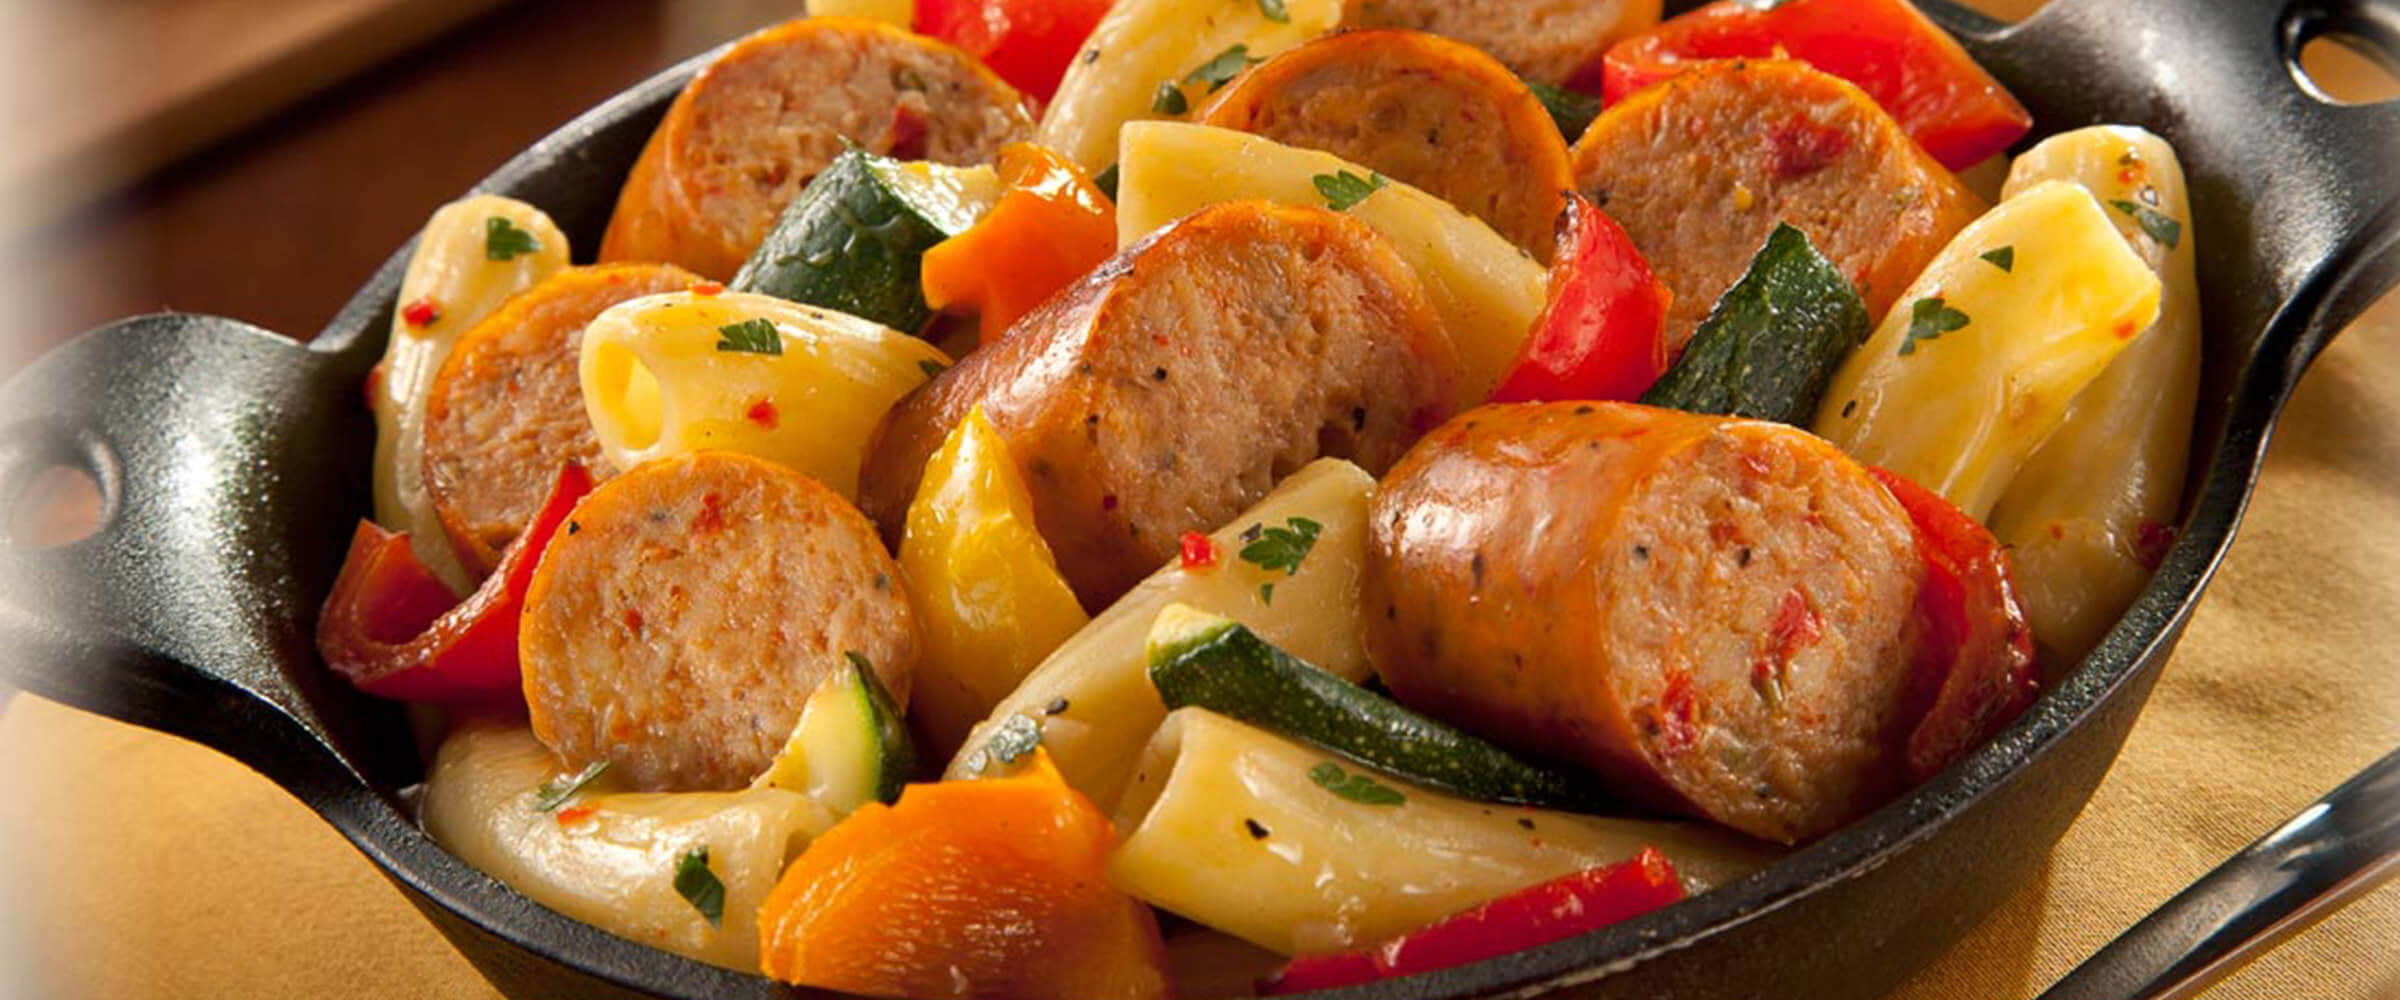 Skillet with Fontanini® sausage